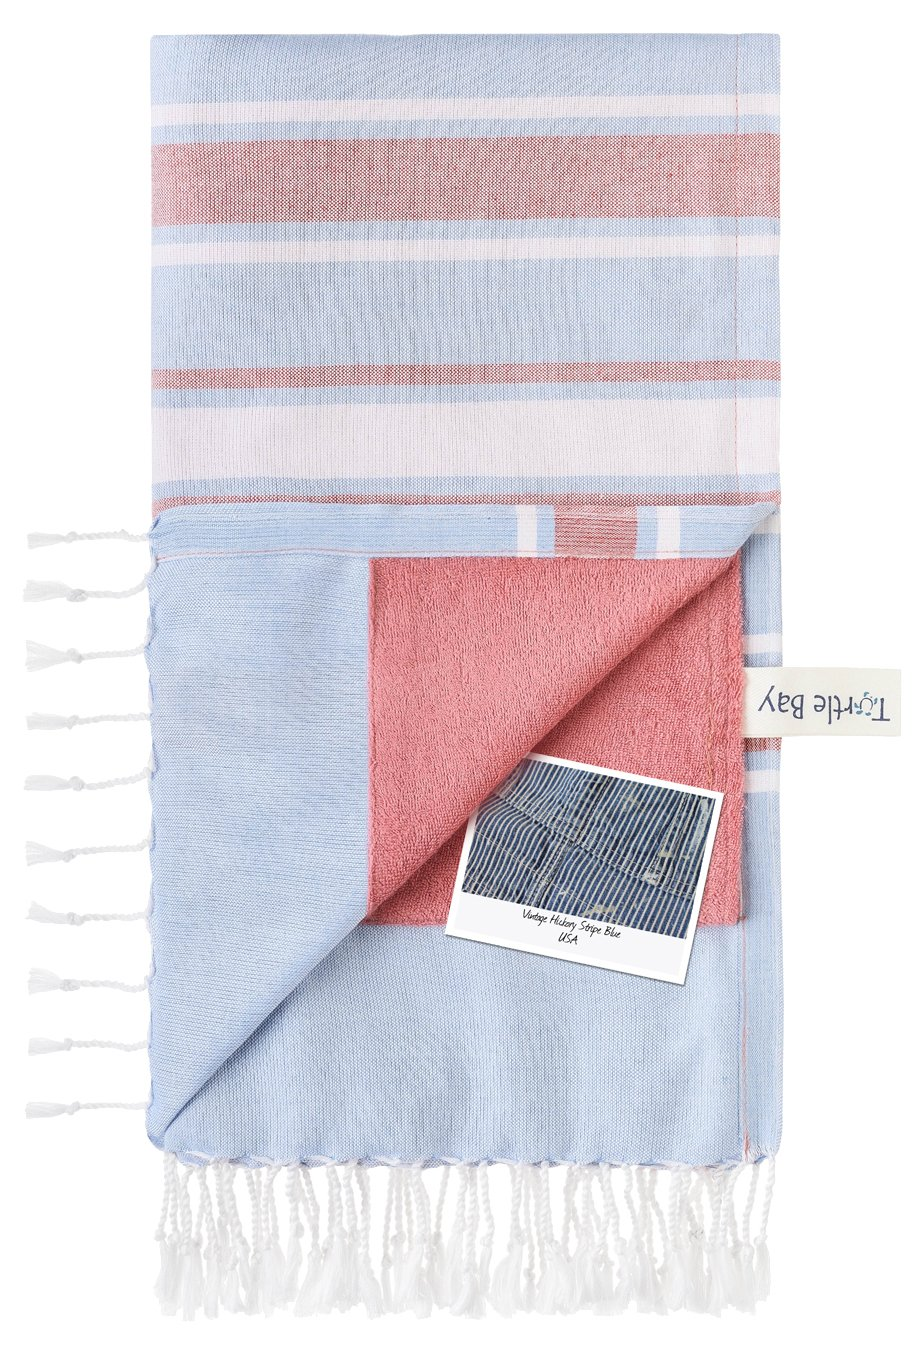 Turtle Bay - Toalla de Playa/Pareo - Toalla de baño - Kikoy Towel Hickory Stripe - Color : Blue - Tamaño : 95 x 170 cms: Amazon.es: Hogar